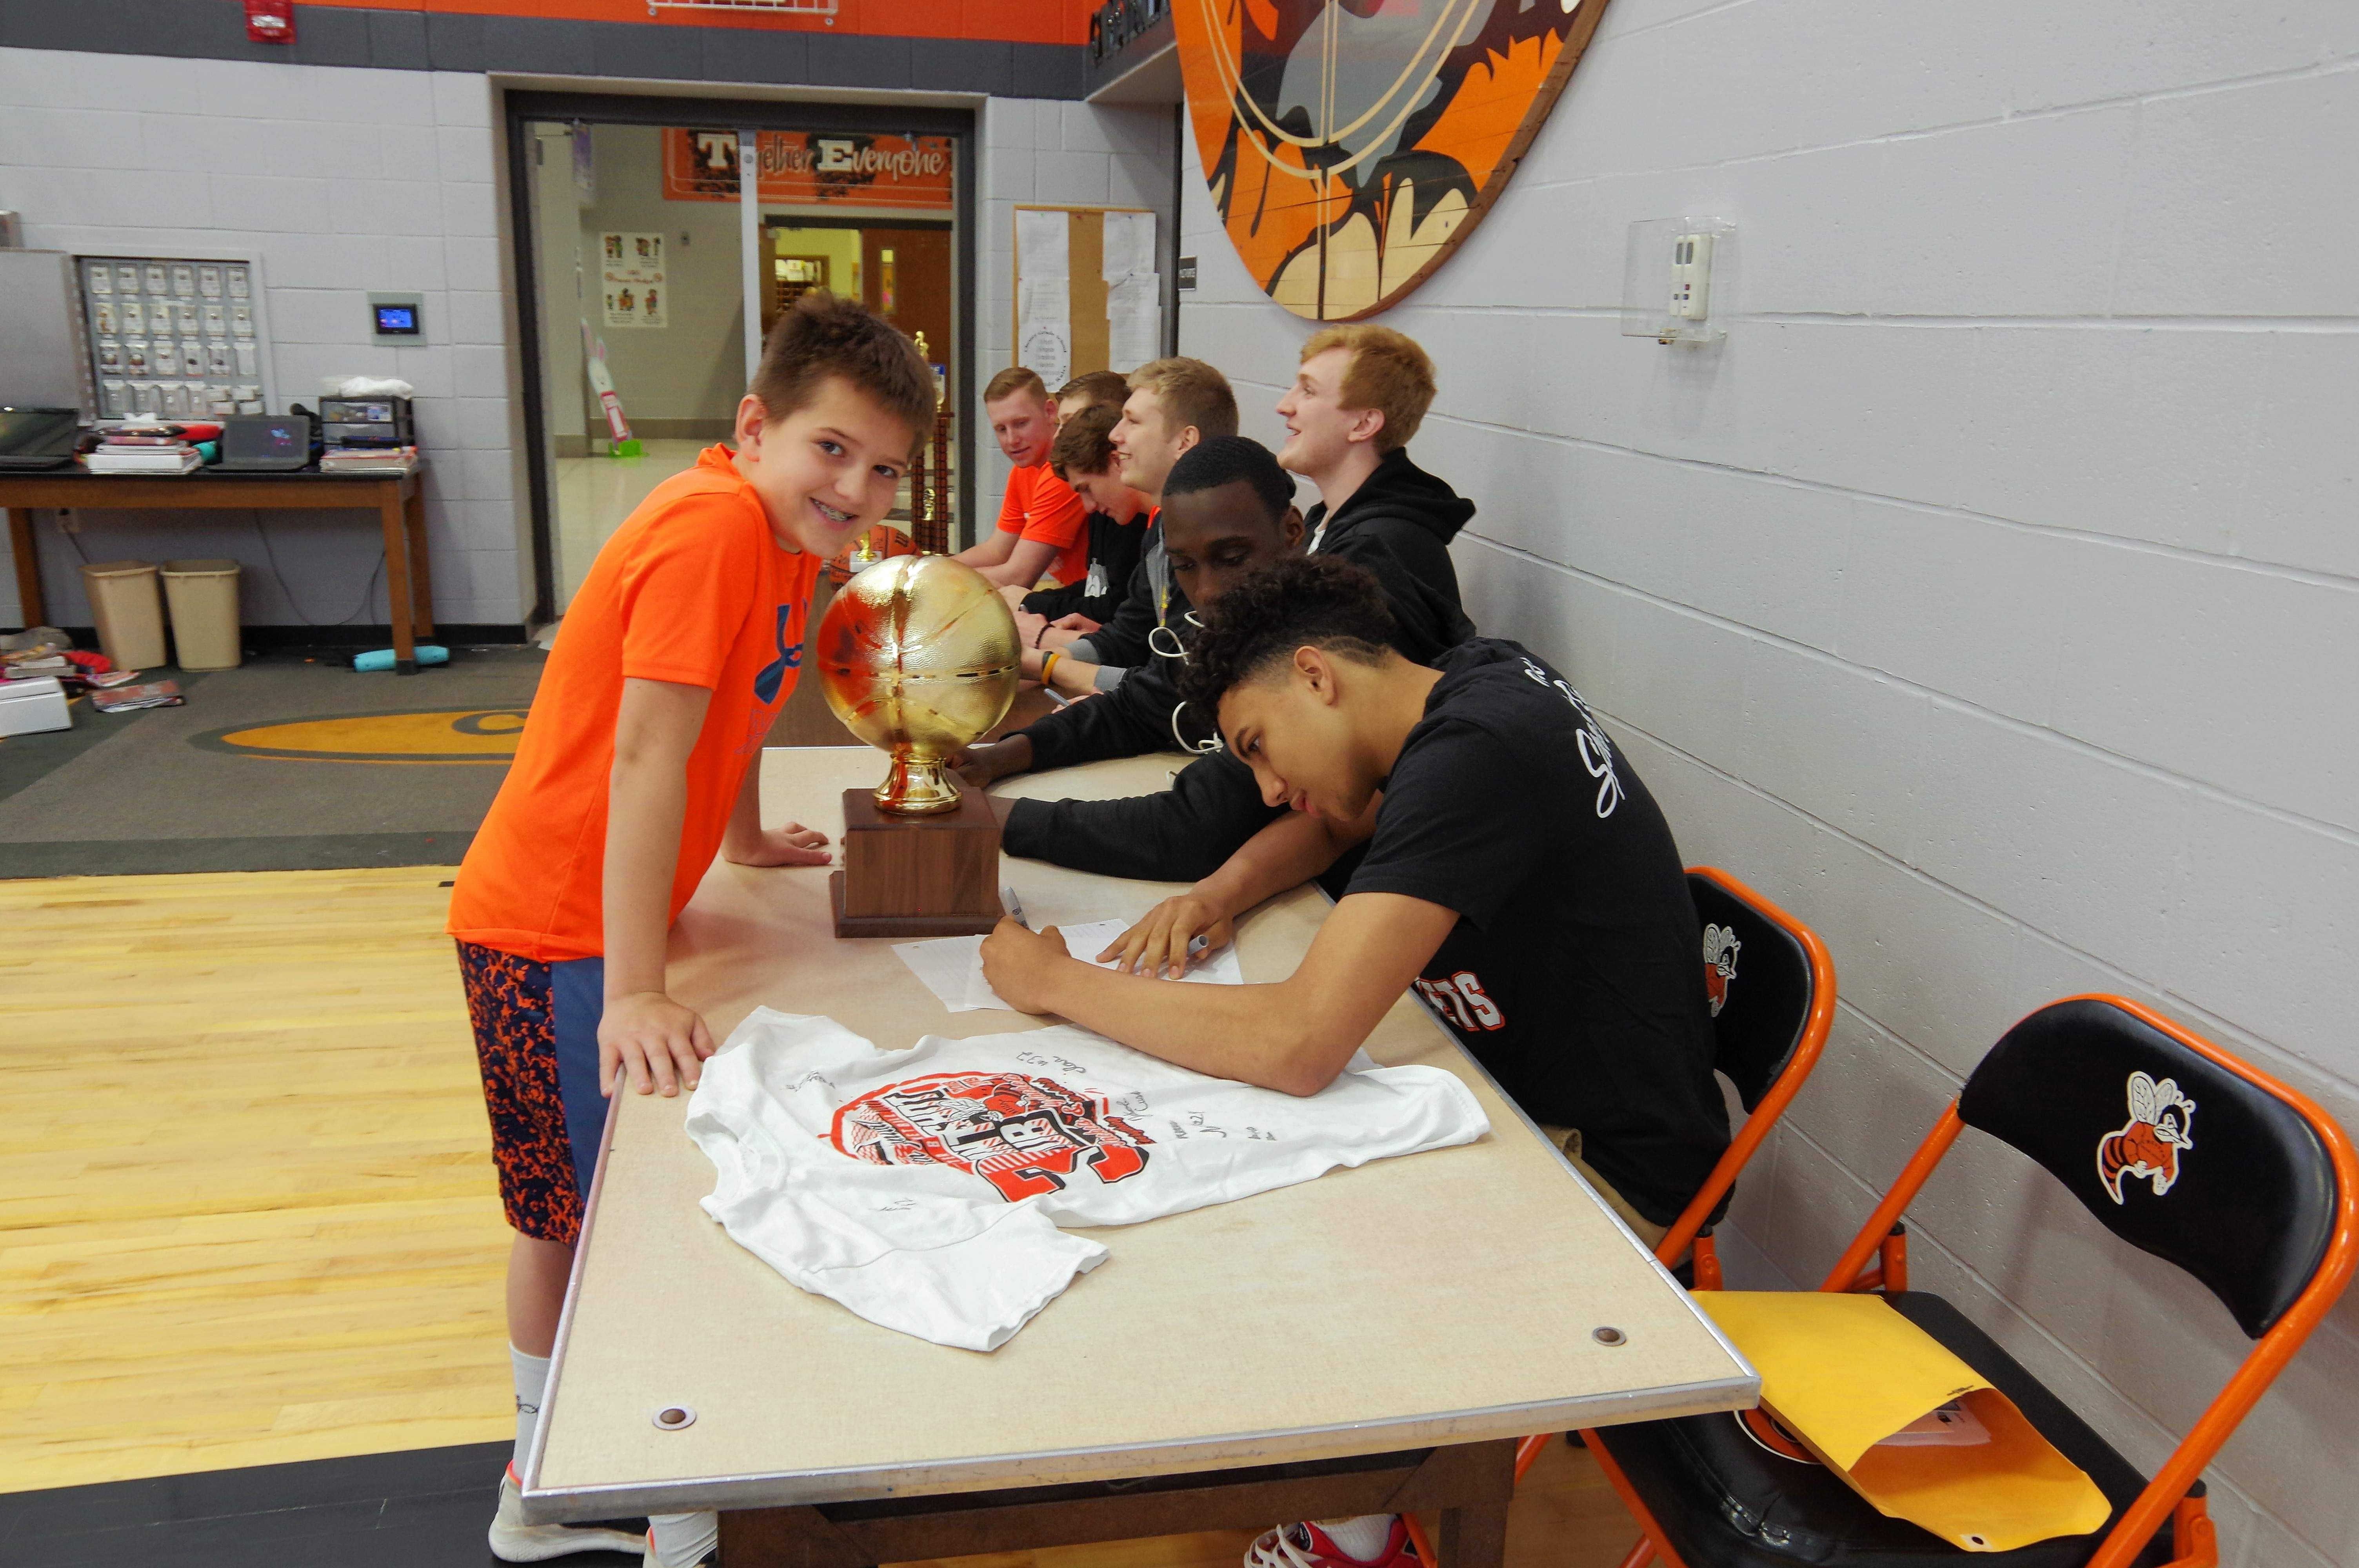 Fifth grade Lannin Carter is the first in line to get autographs. Signing Lannin's team photo is DeOndre Martin.